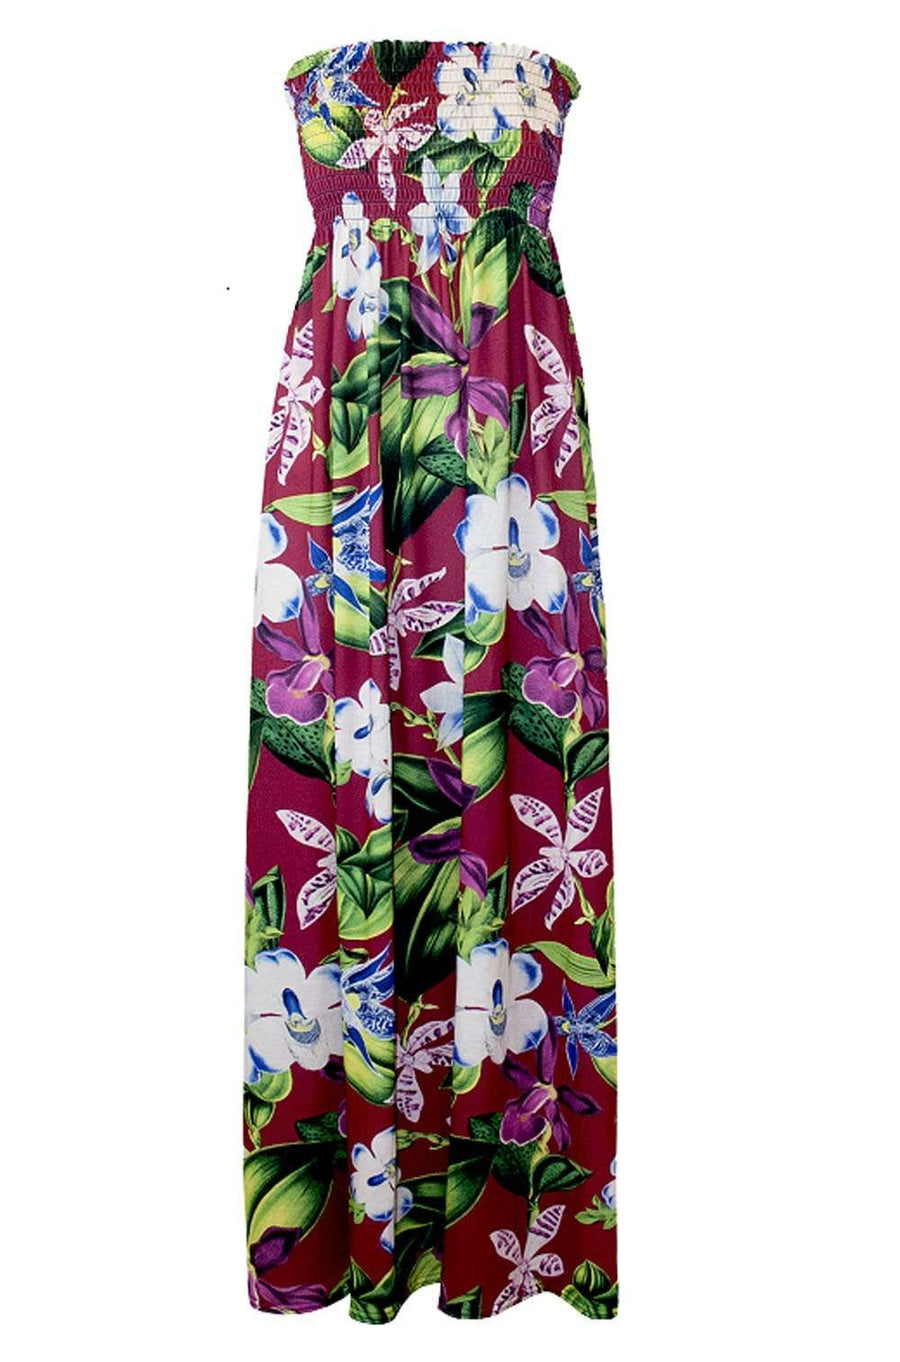 Cream Tropical Print Strapless Maxi Dress - bejealous-com